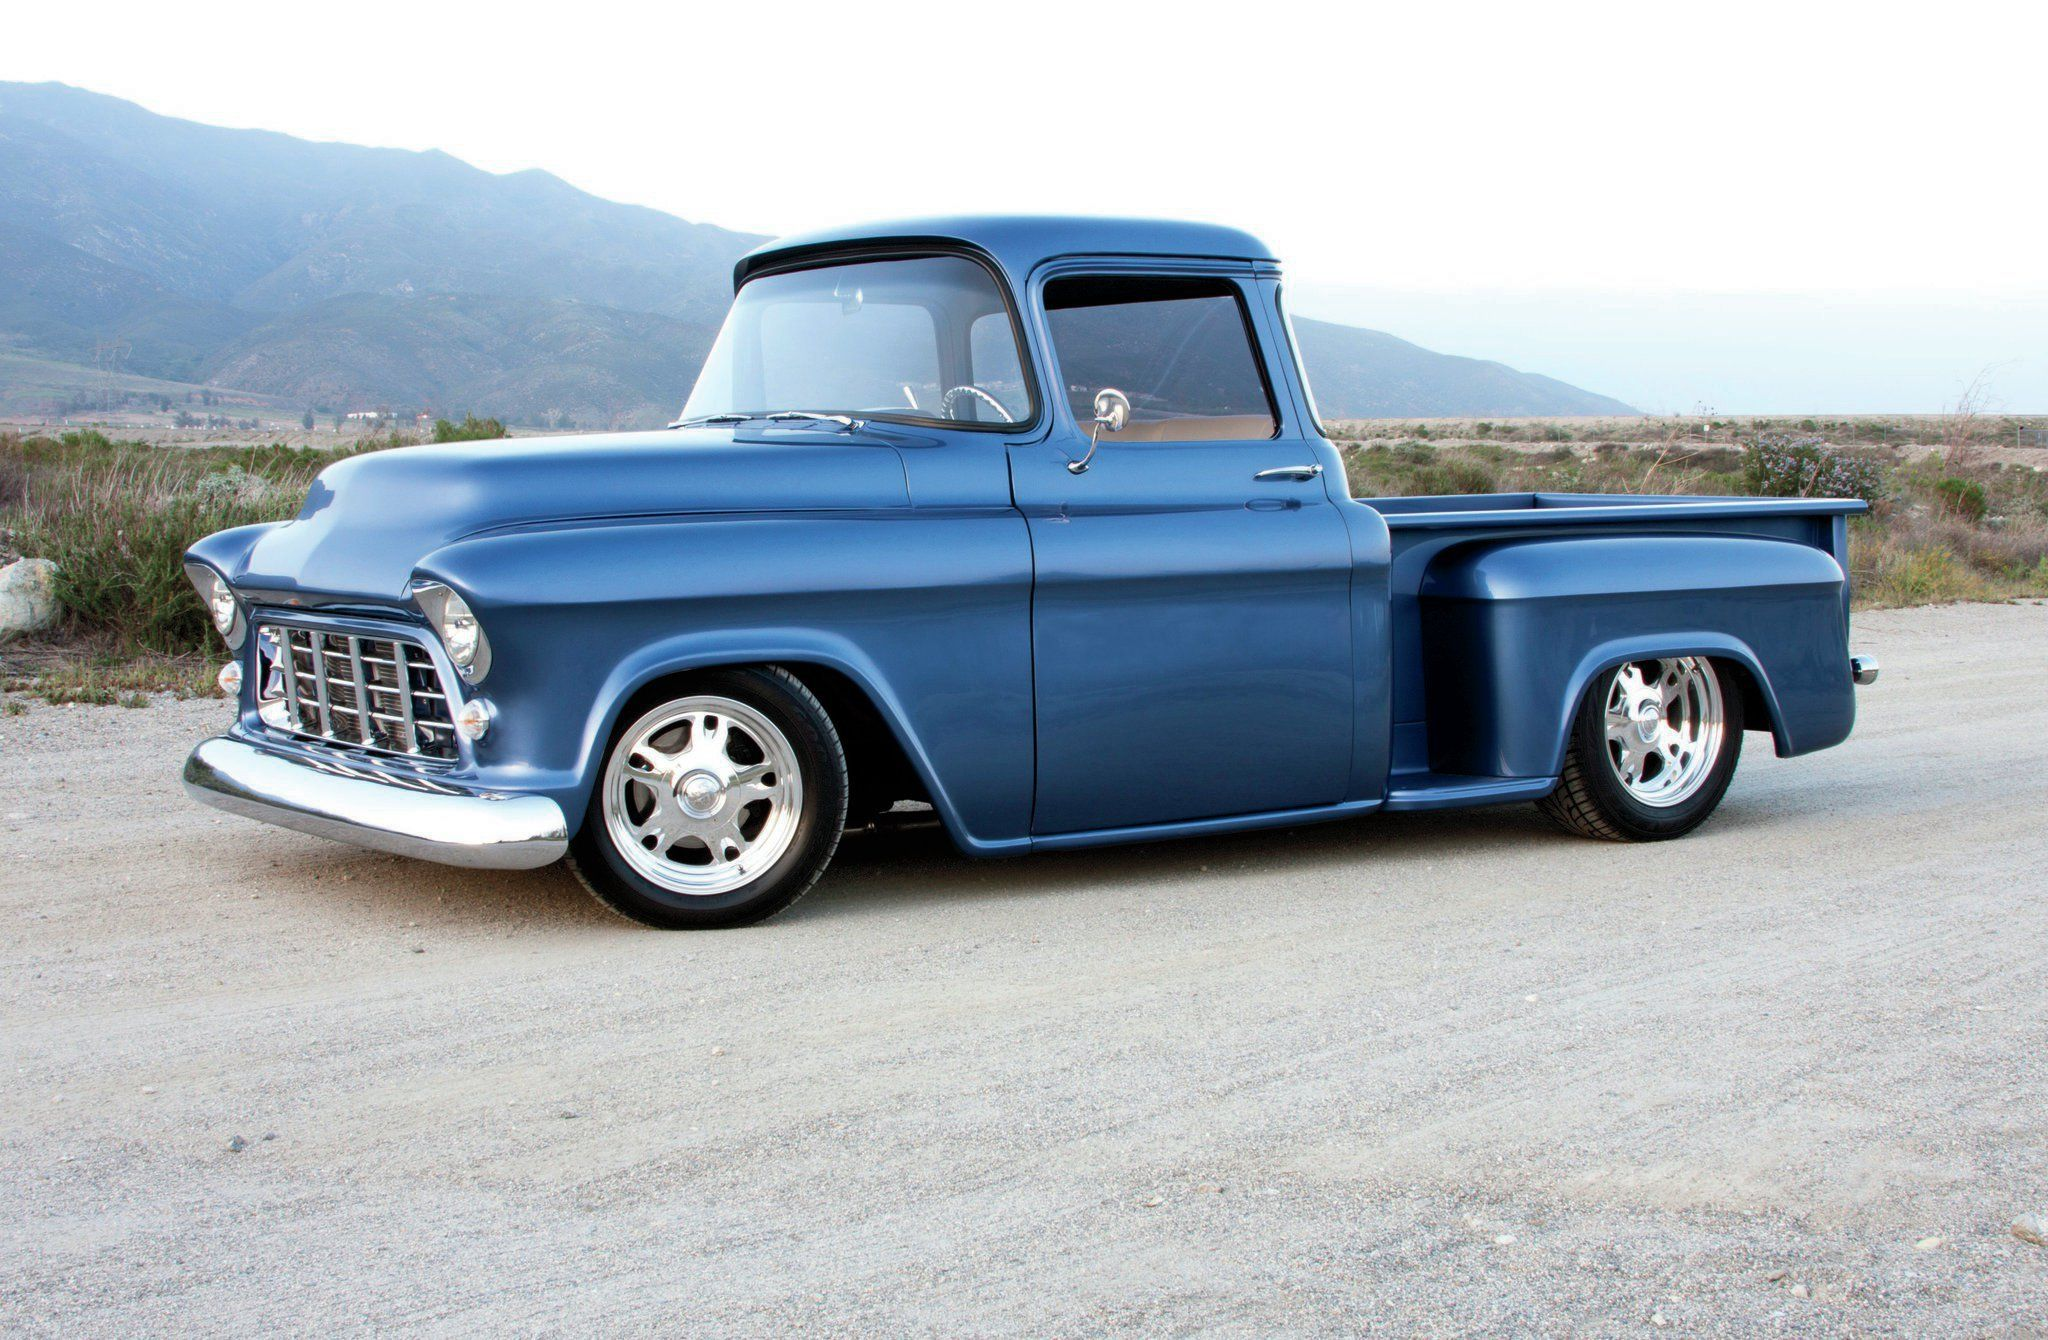 1955 chevrolet hot rod truck pictures to pin on pinterest - 1955 Chevy Truck Sweet Dream Hot Rod Network